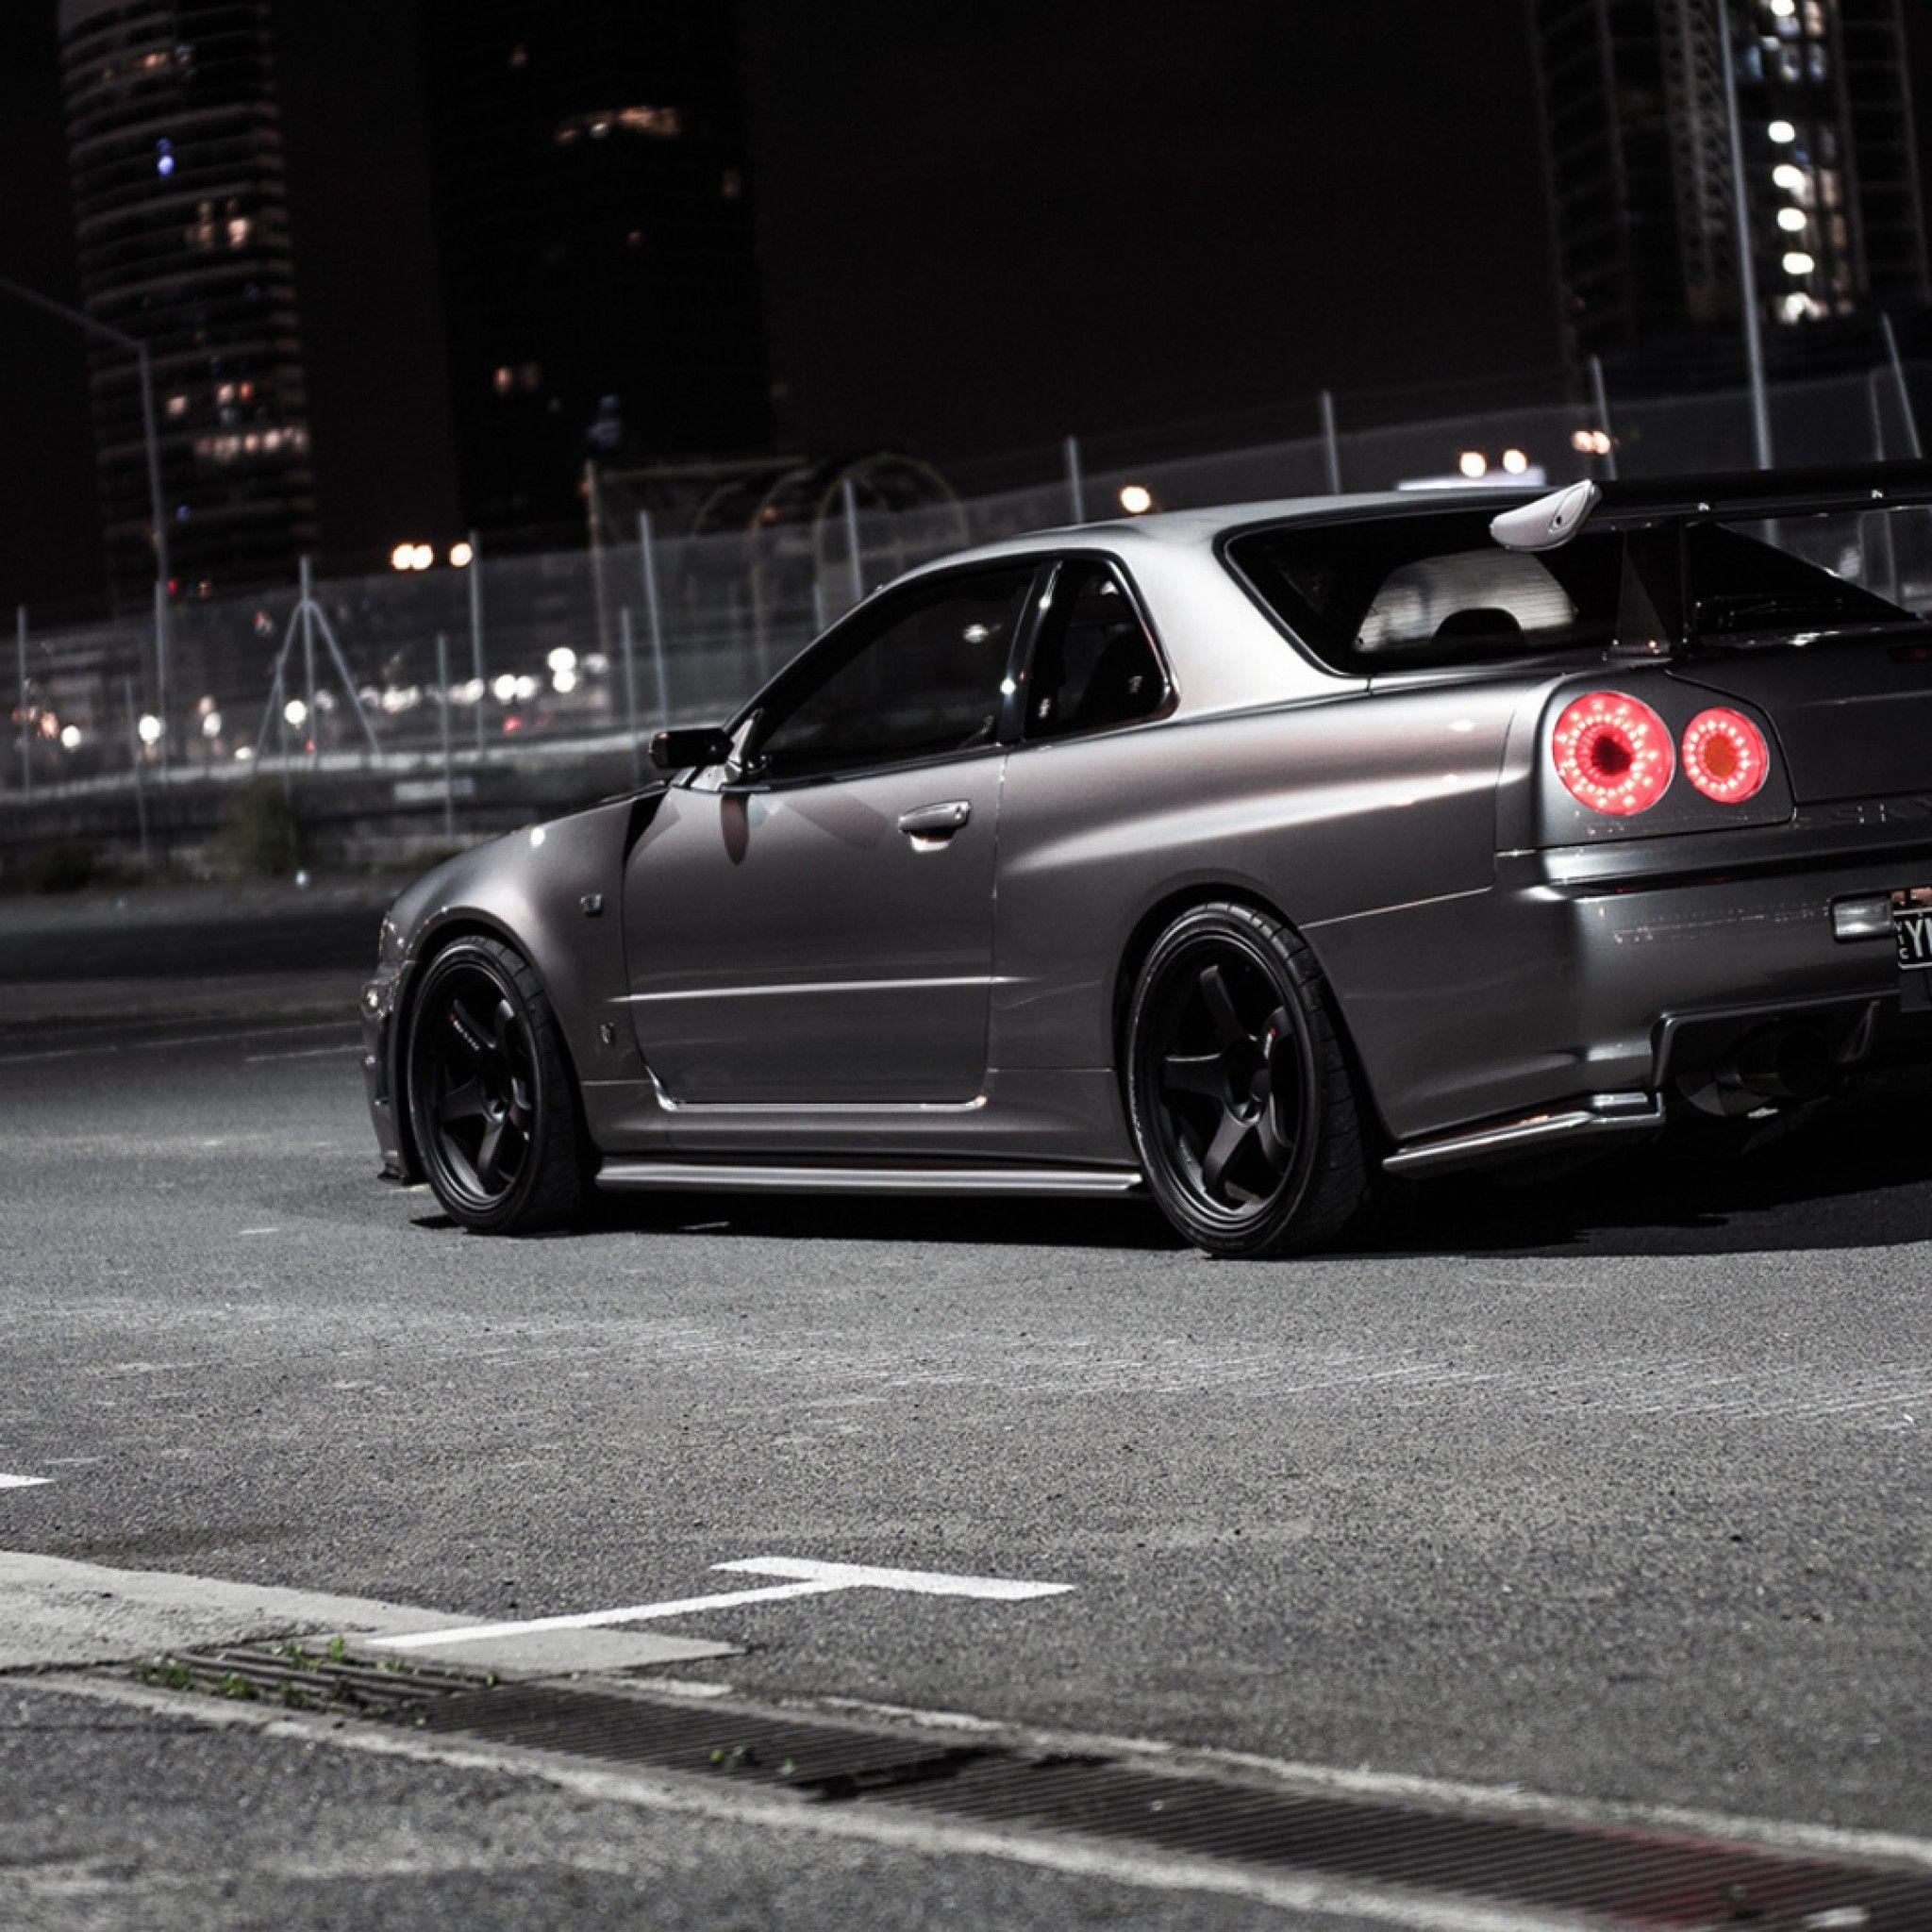 Gtr Wallpaper Iphone Jpeg Box Download Your Favorite Digital